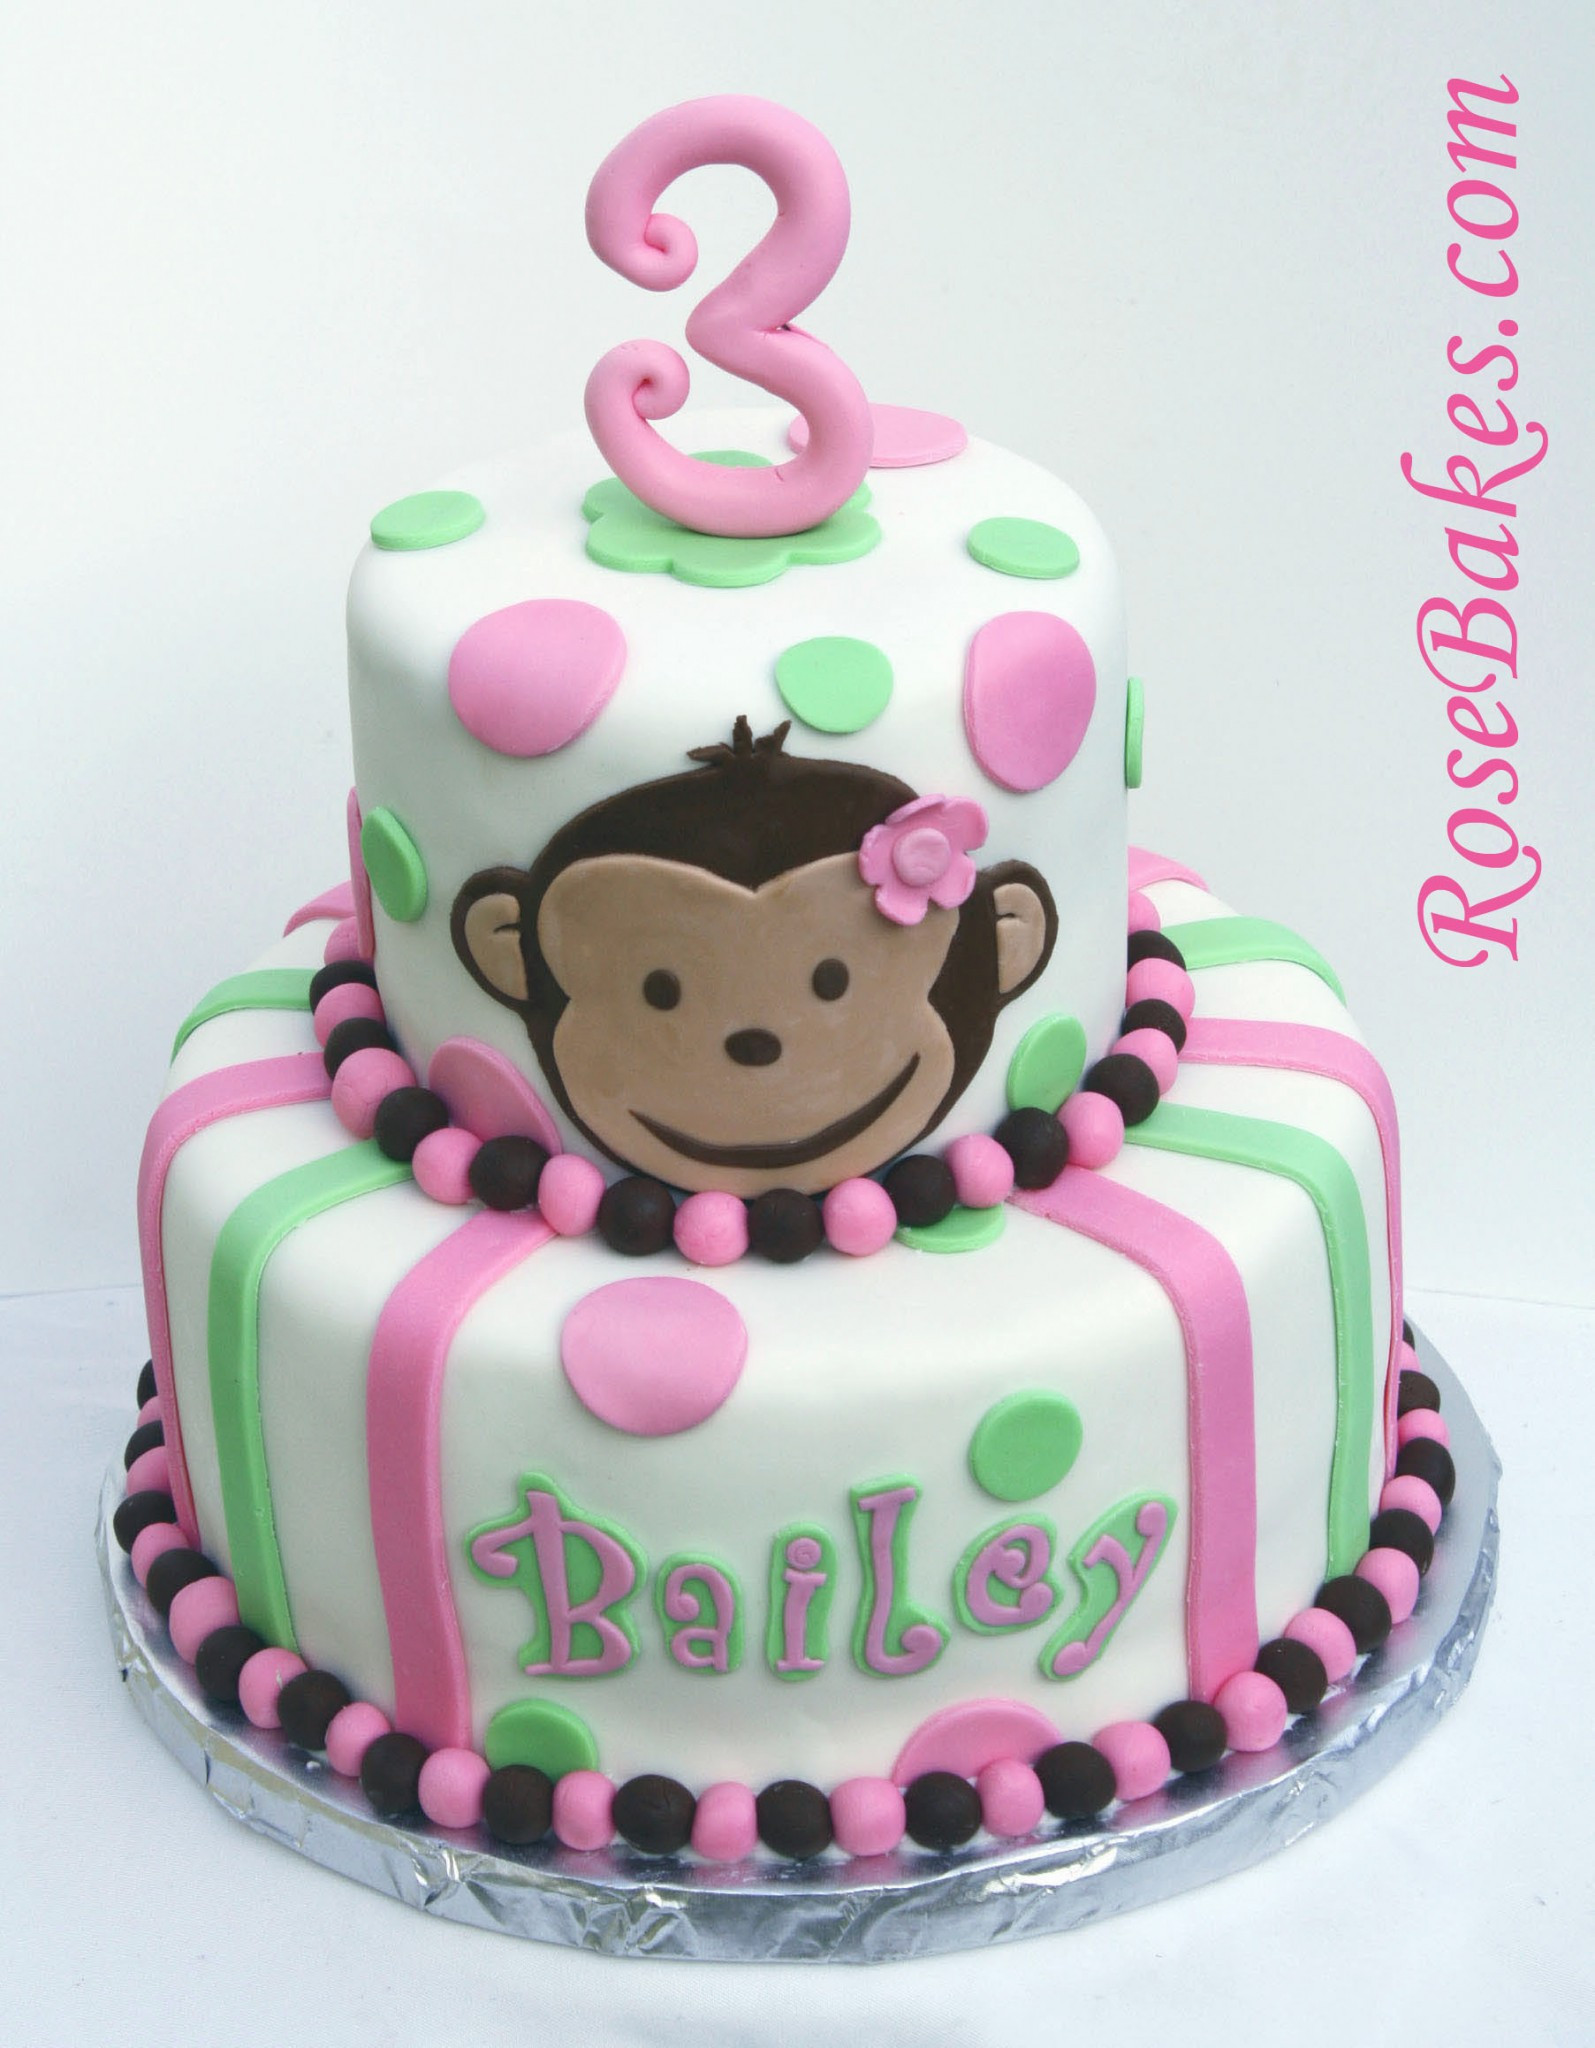 Best ideas about Monkey Birthday Cake . Save or Pin Pink Mod Monkey Cake Now.